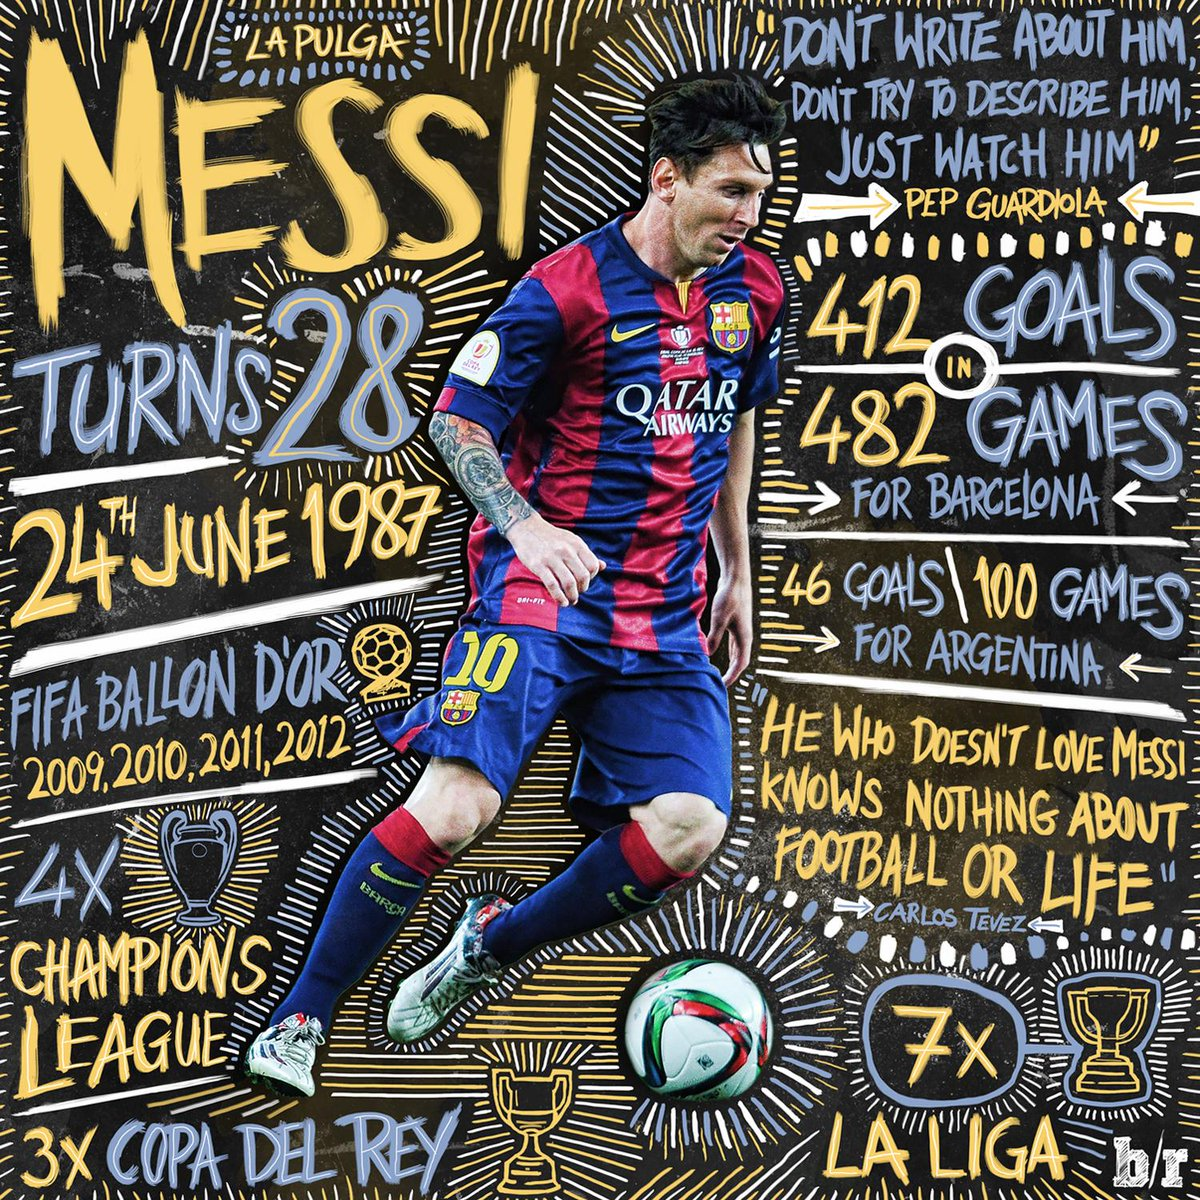 He Who Doesnt Love Messi Knows Nothing About Football Or Life